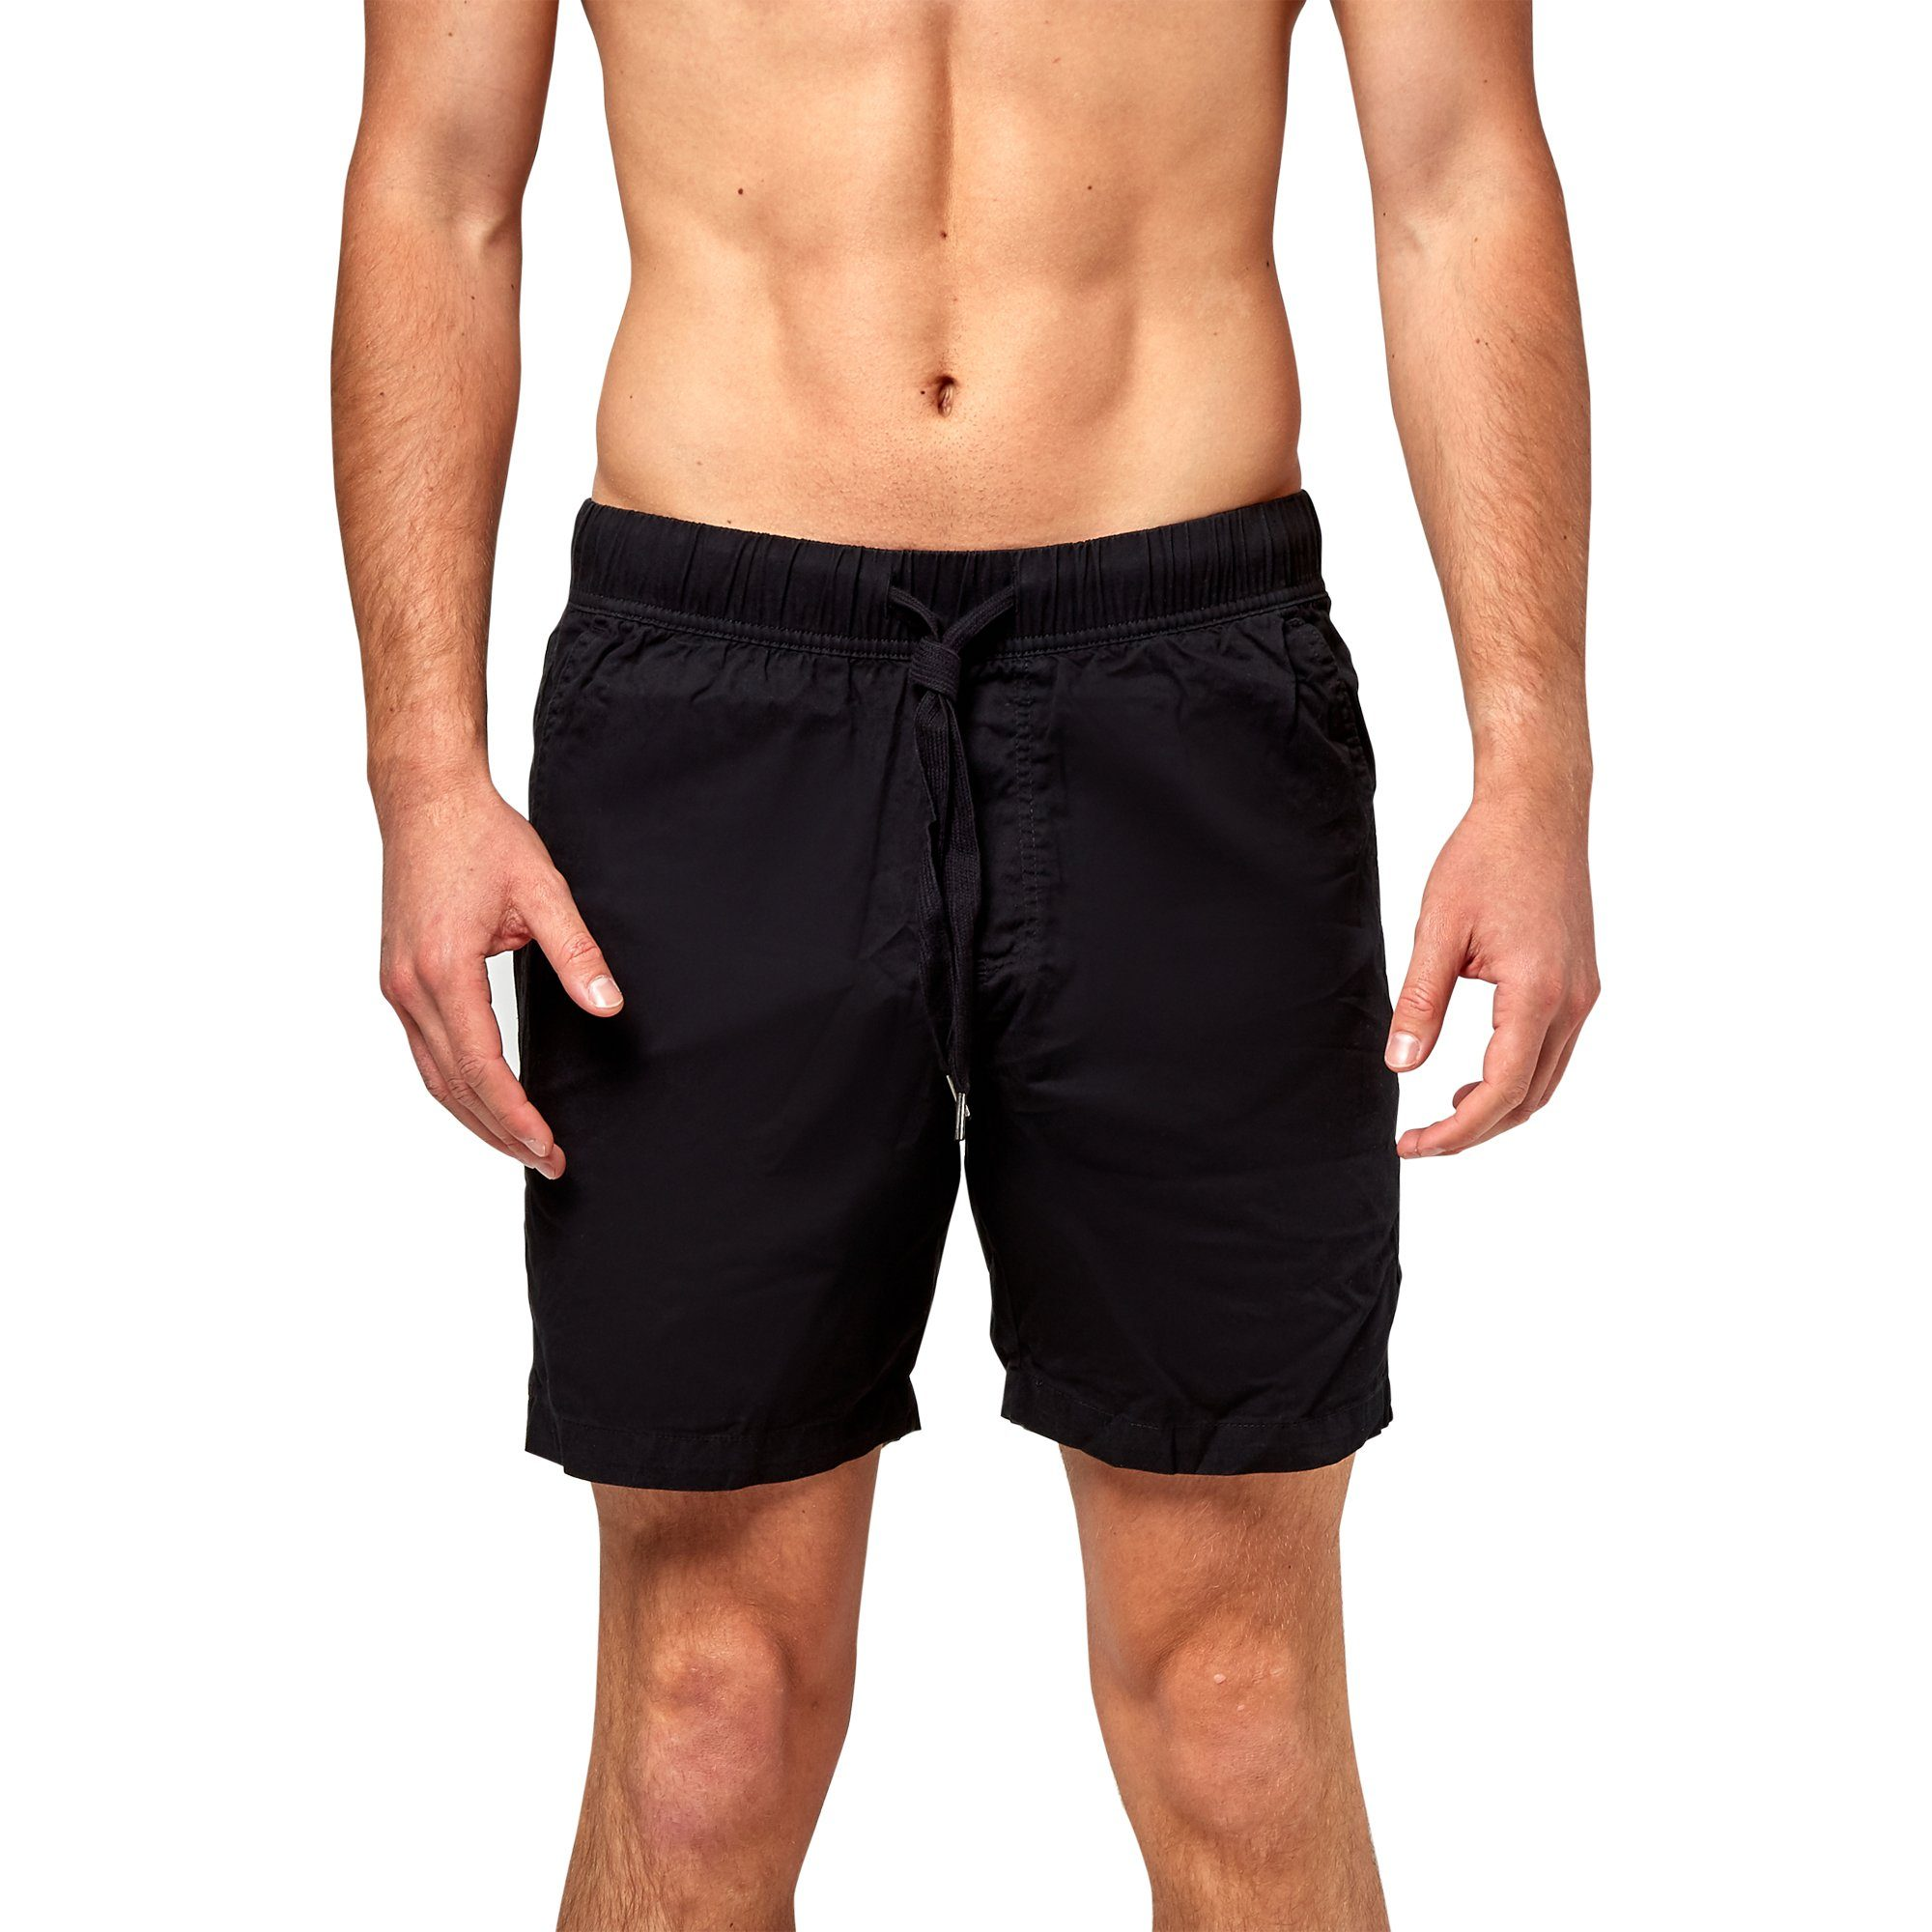 Bonds Outerwear Men's Woven Short - Black Outerwear Men's Bonds